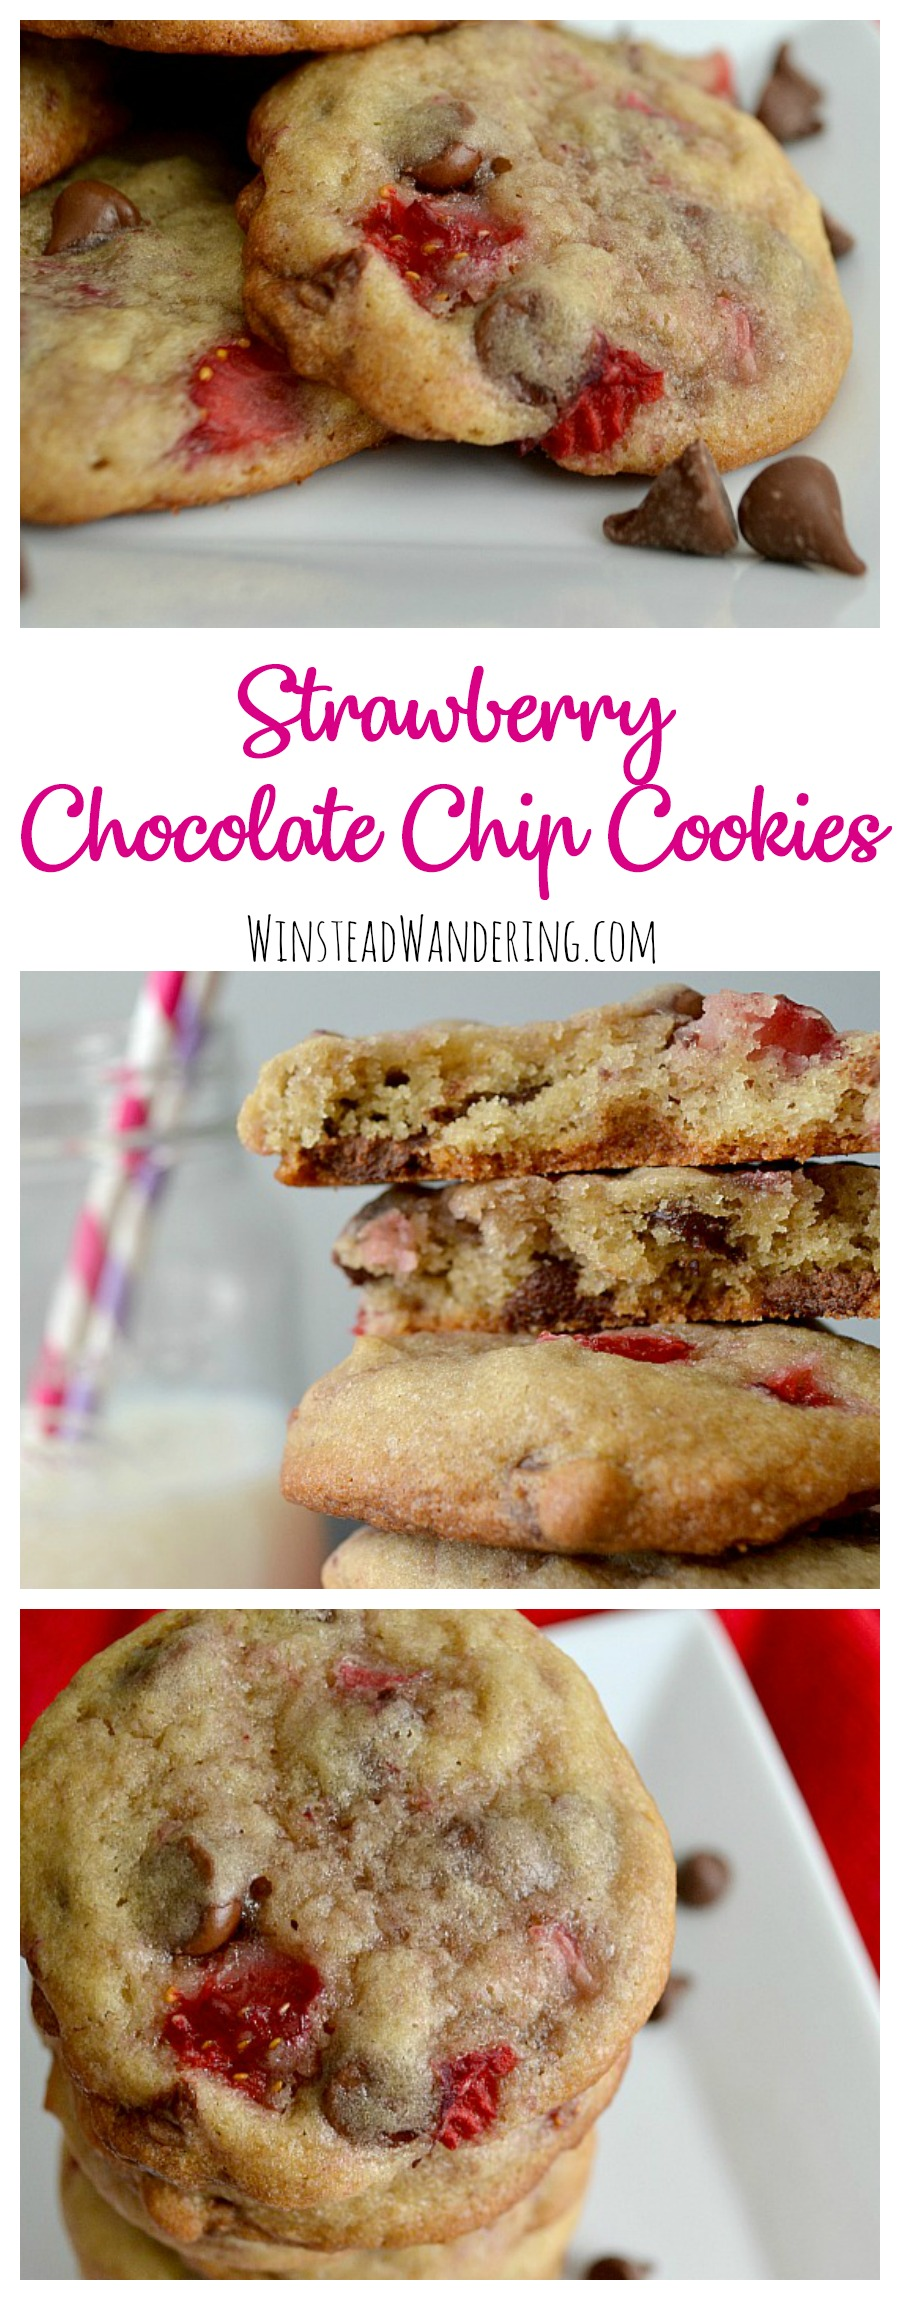 Add a whole bunch of chopped berries to a classic dessert recipe and you get these sweet, chewy, tart, and decadent Strawberry Chocolate Chip Cookies.